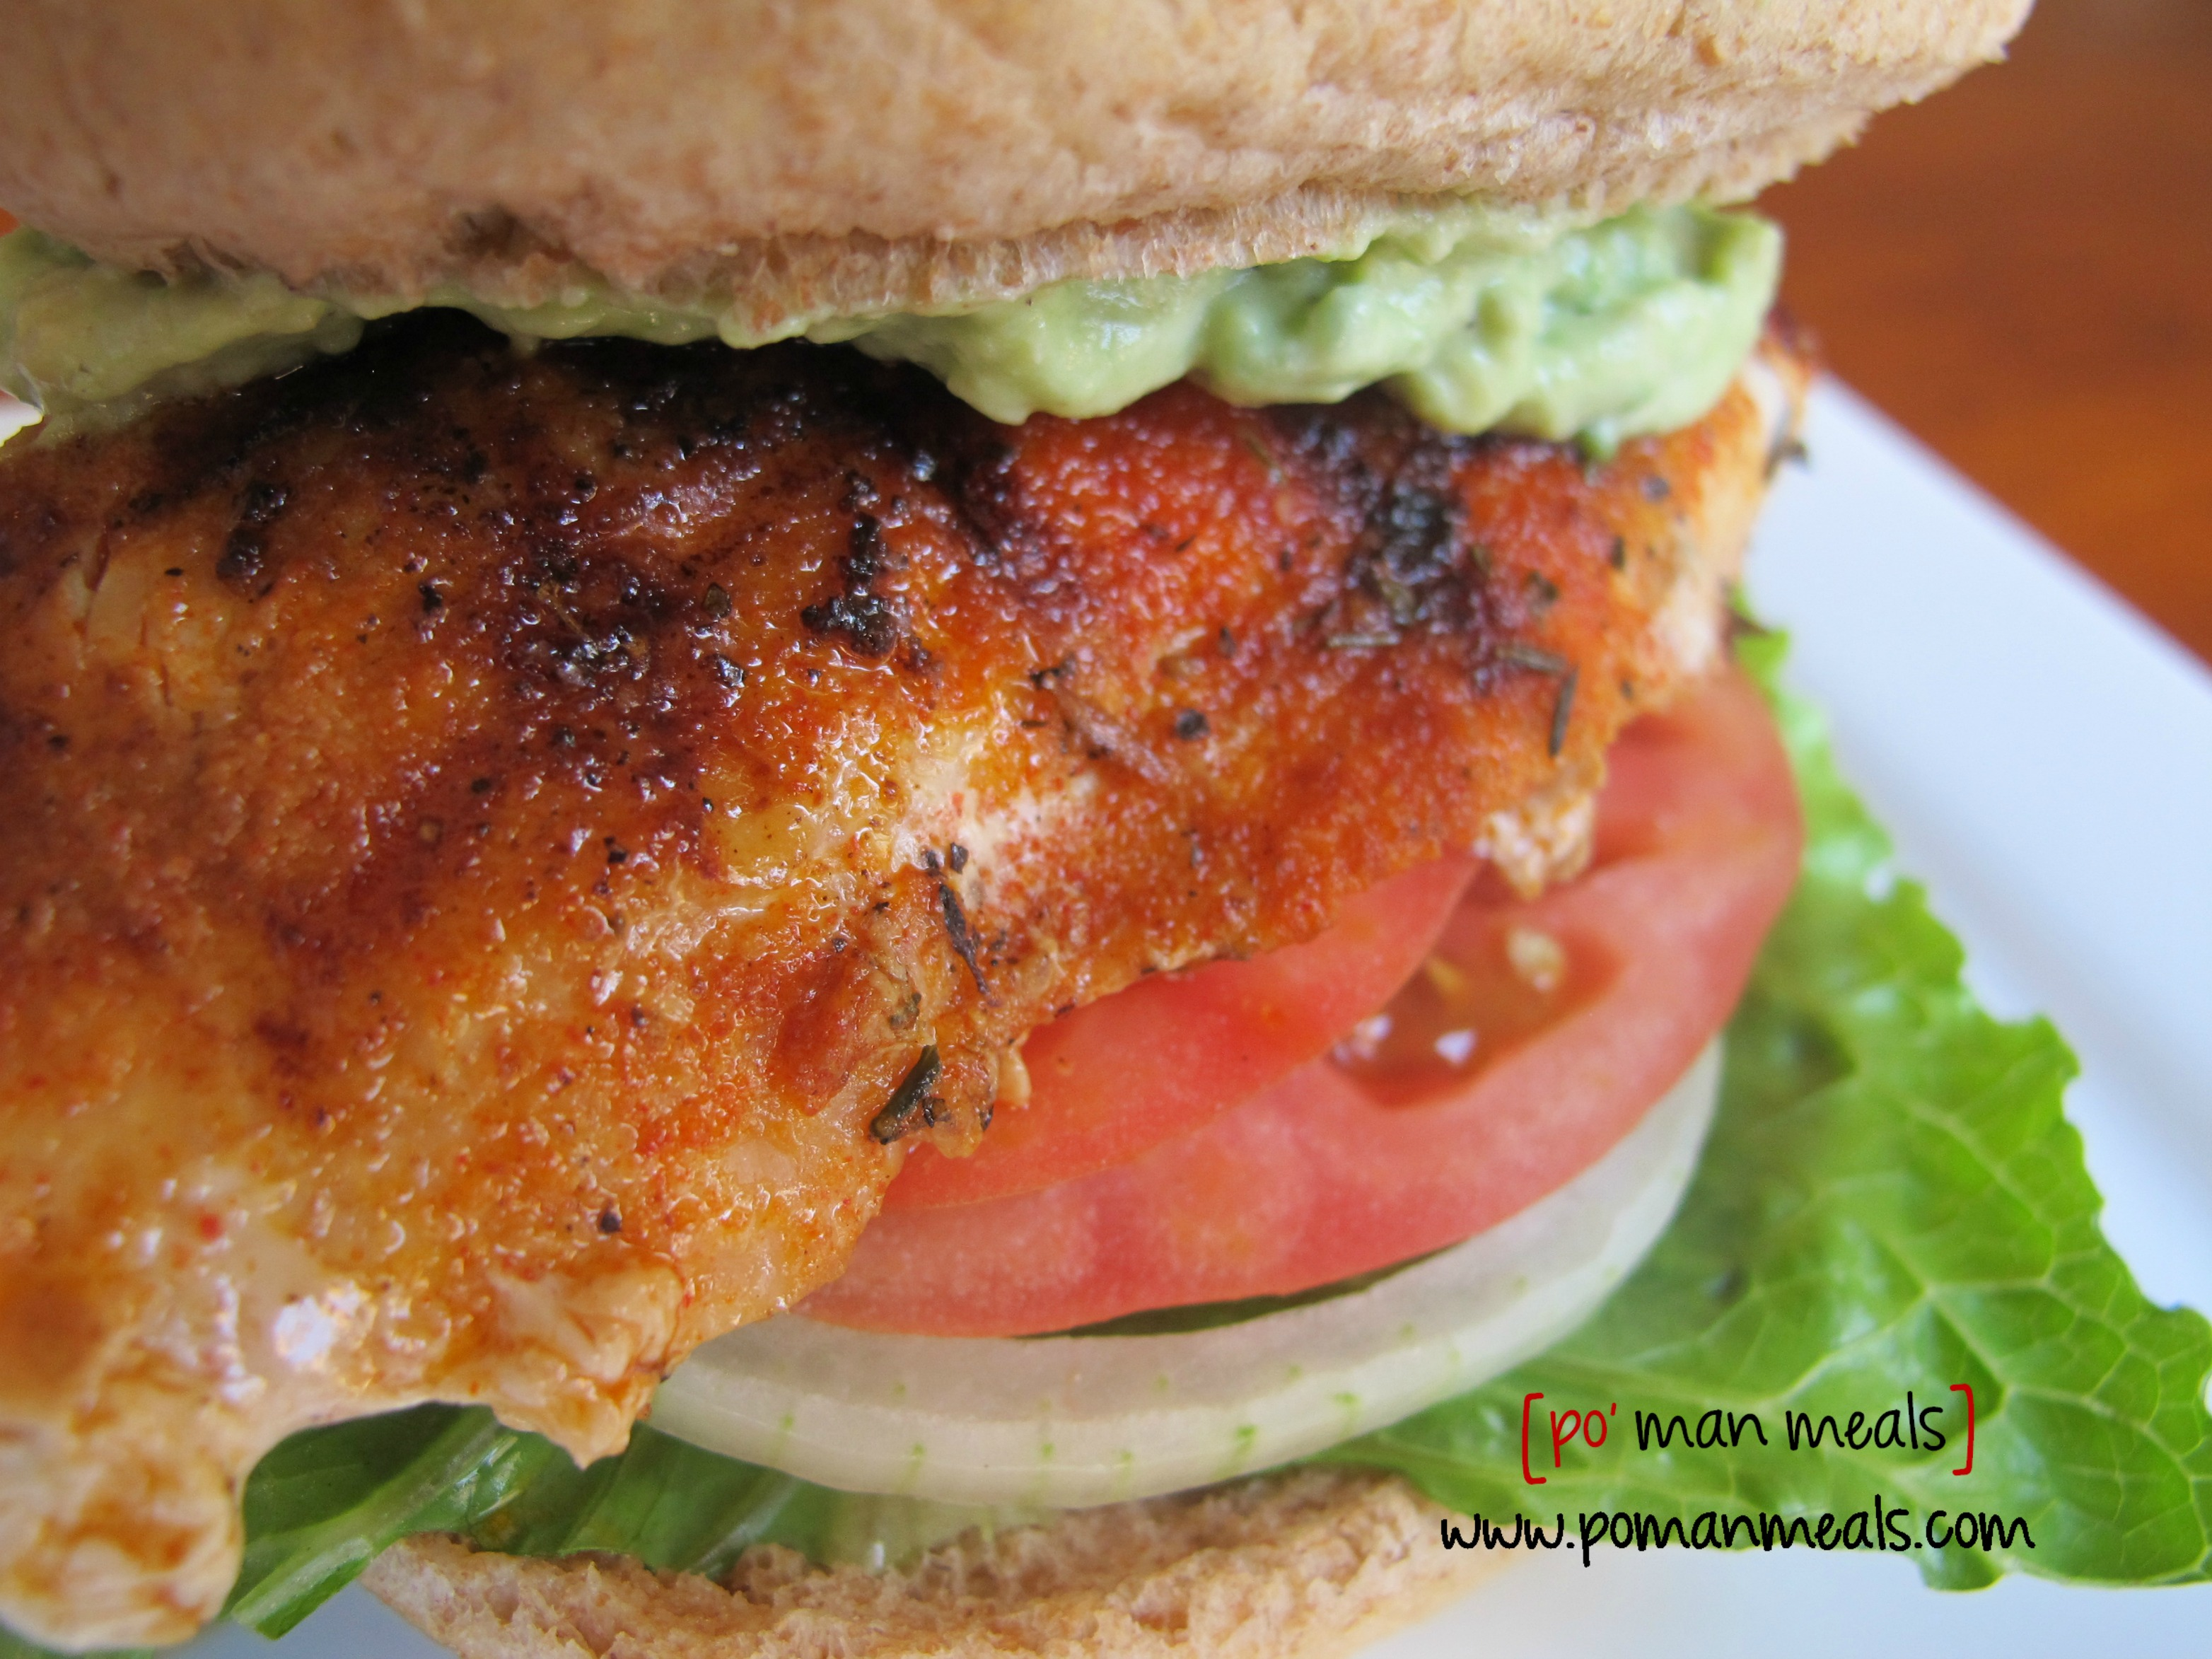 po' man meals - blackened chicken sandwiches with avocado cream sauce